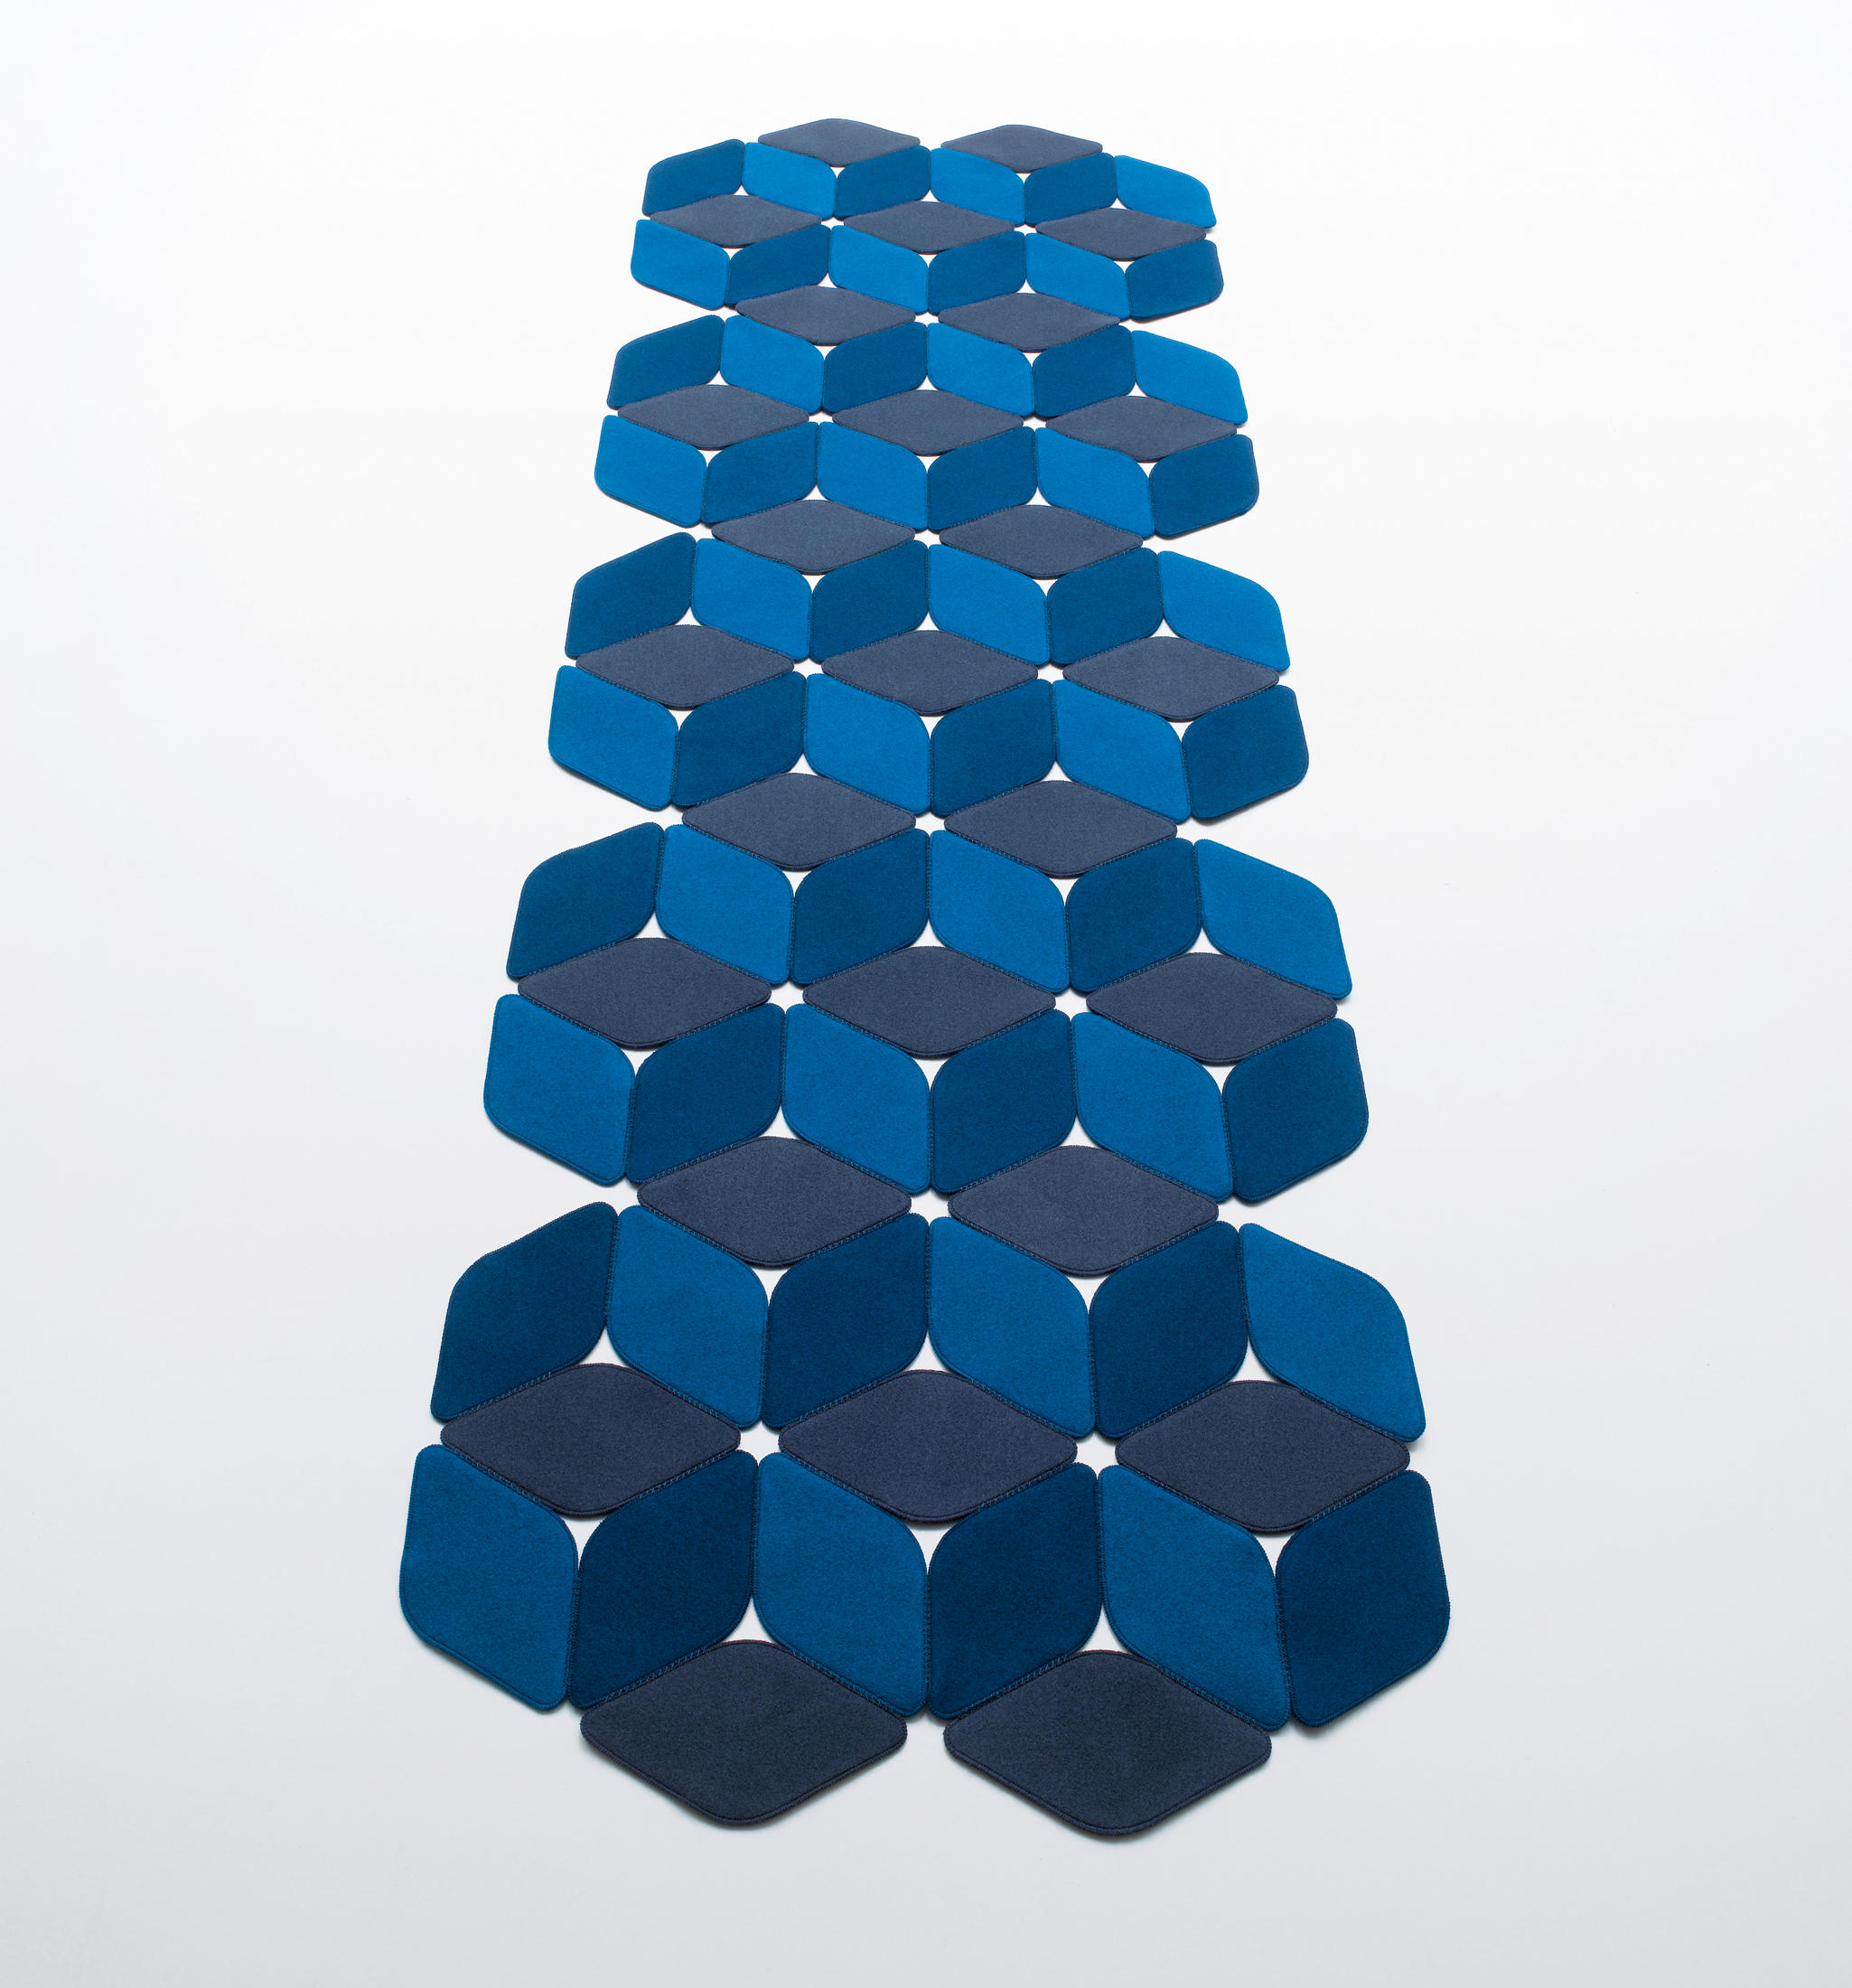 kaleidoscope rugs designer rugs from paola lenti. Black Bedroom Furniture Sets. Home Design Ideas